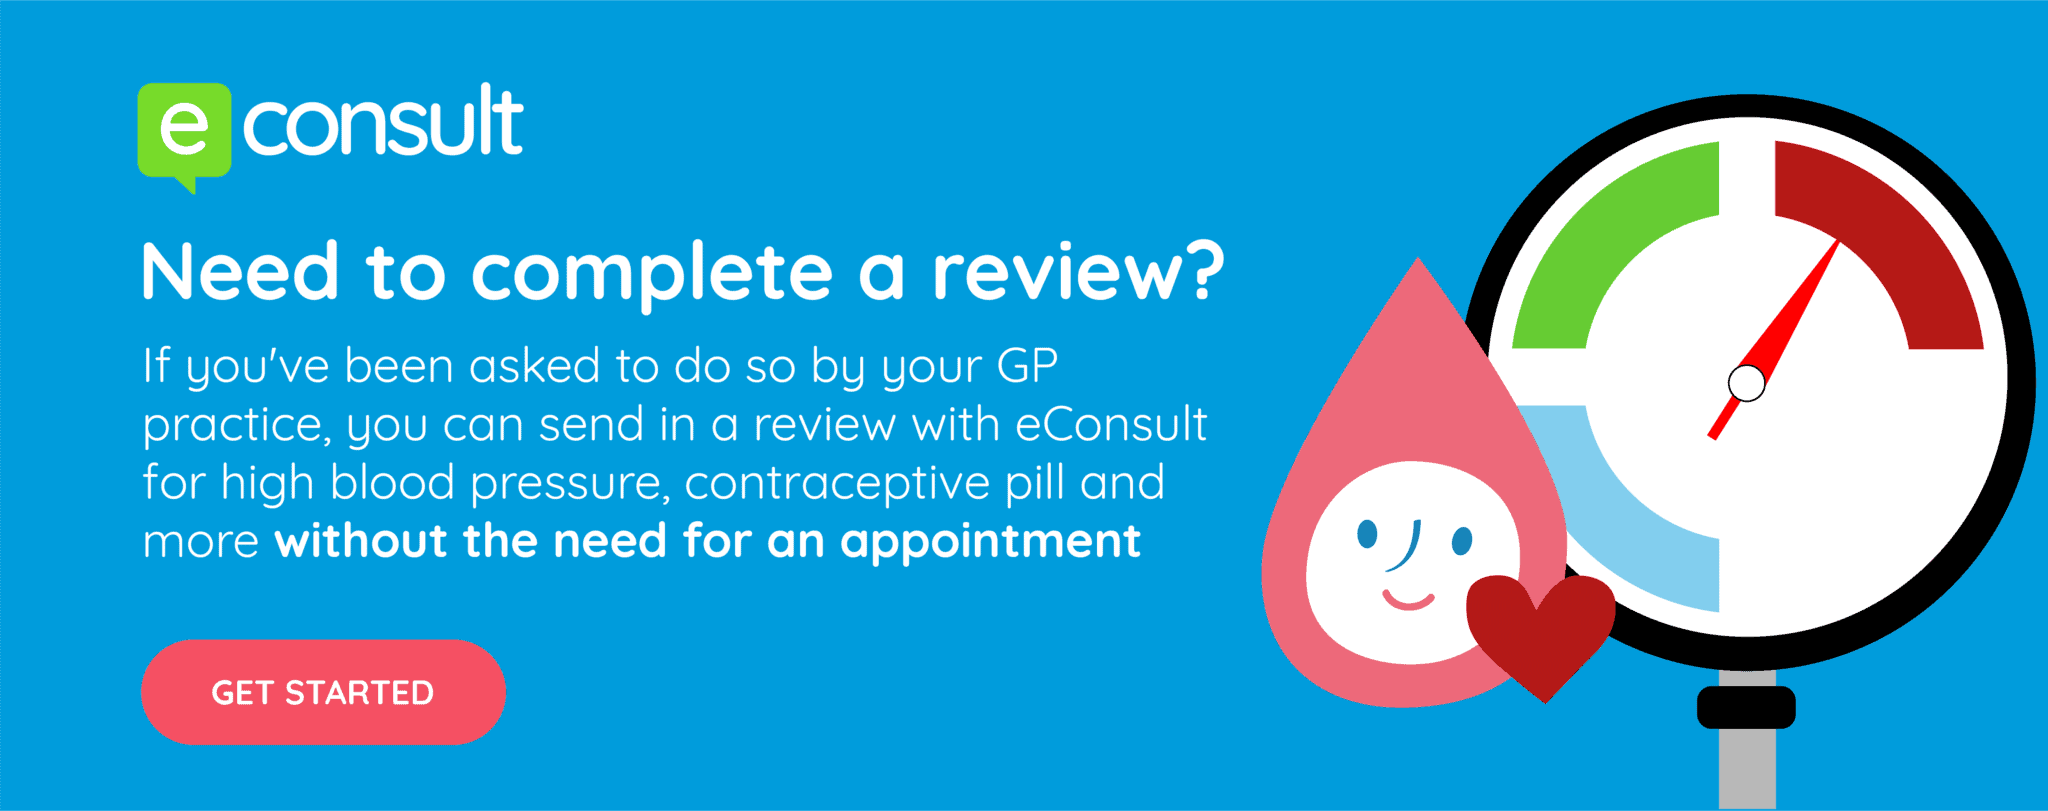 Need to complete a review? Get started online.